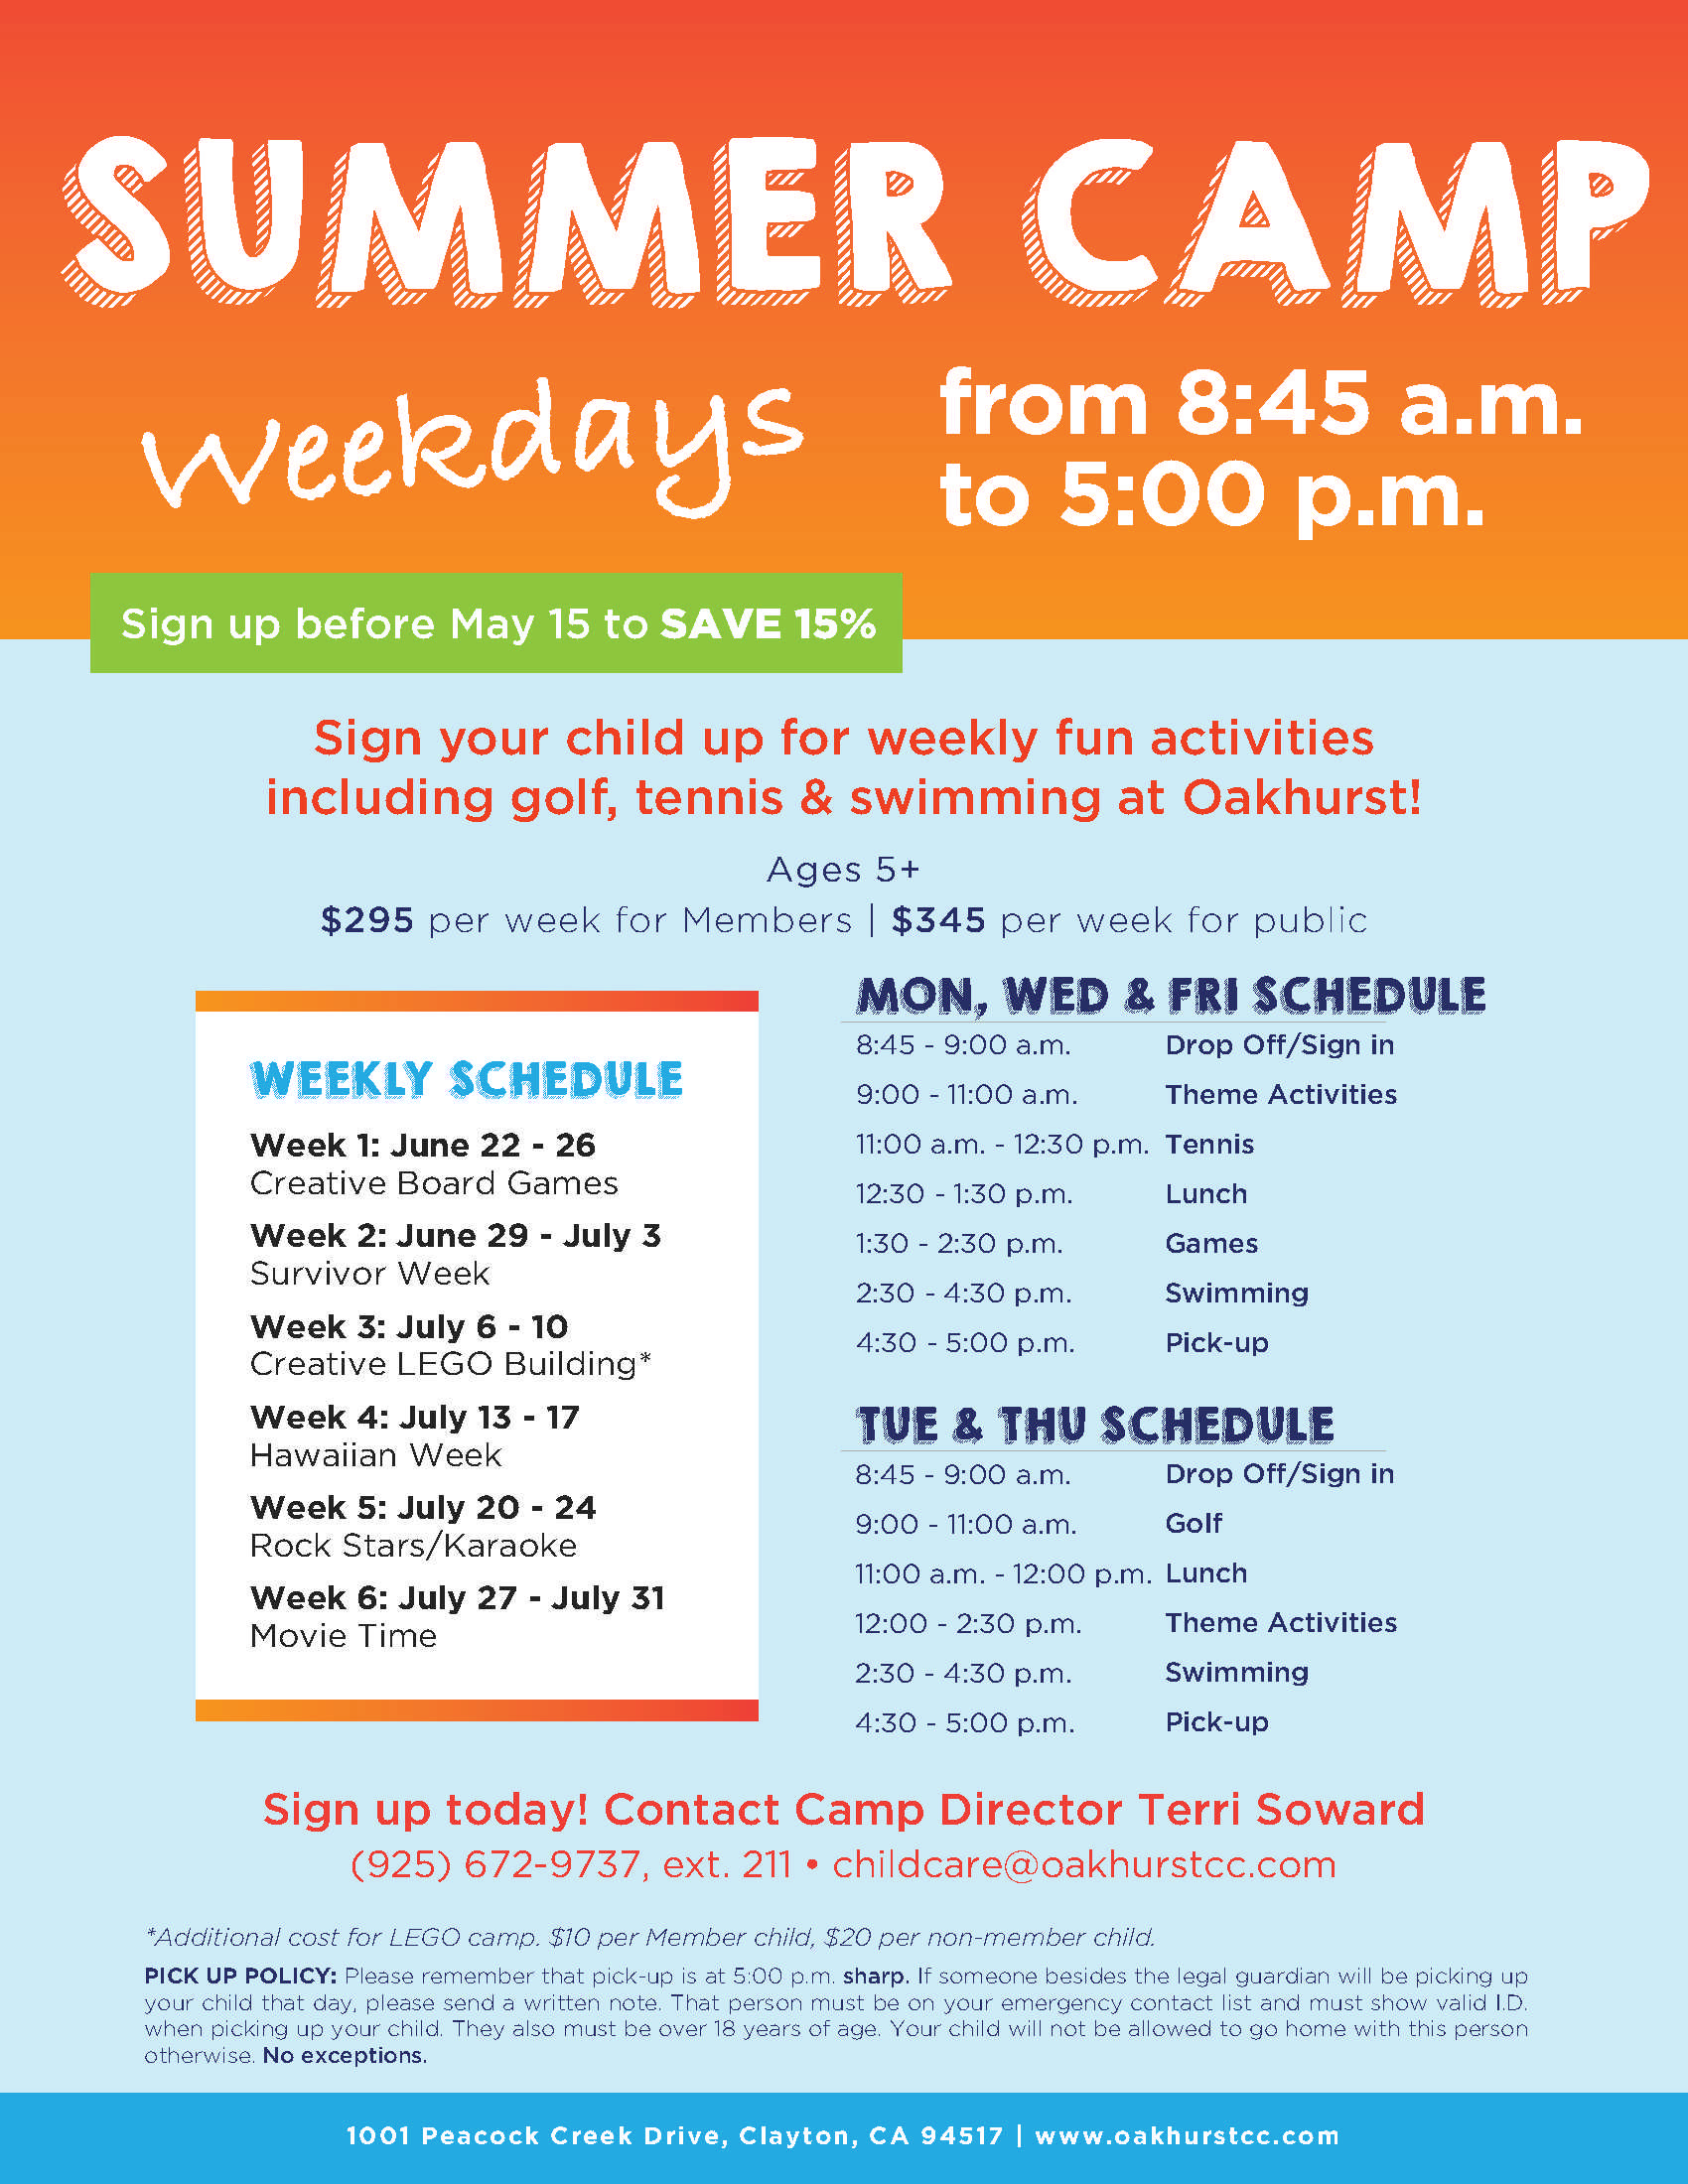 Free Business Plan Template For Summer Camp Plans Oakhurst pertaining to Summer Camp Schedule Template